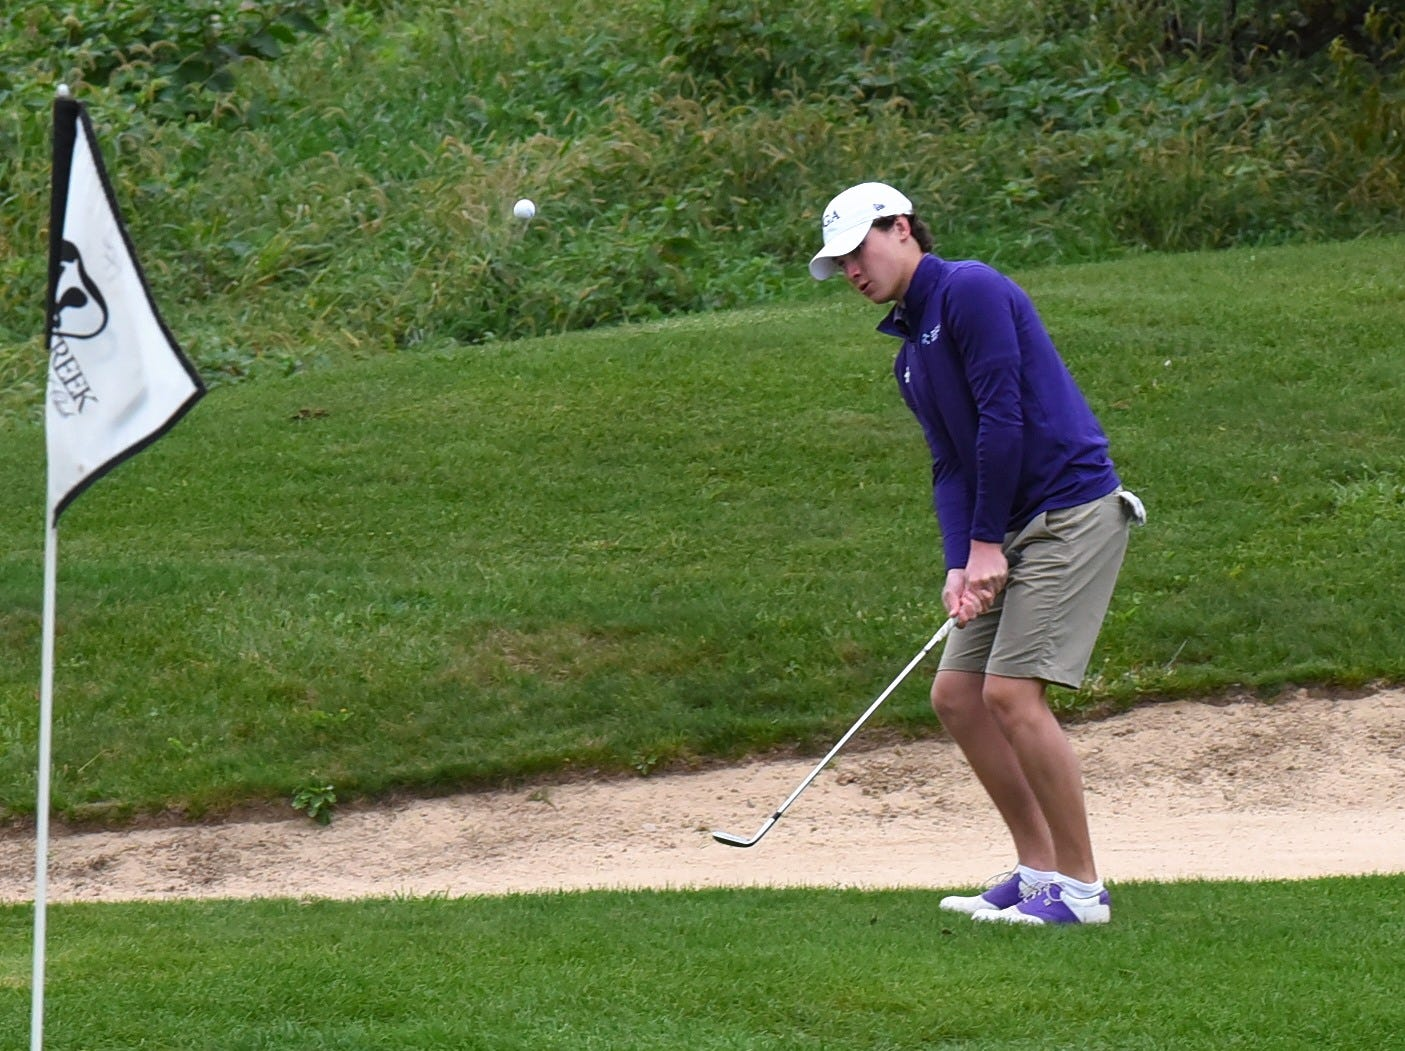 Jack Baker of Elder pitches to the green at the 2018 Southwest District Golf Tournament in Beavercreek, Ohio, October 11, 2018.